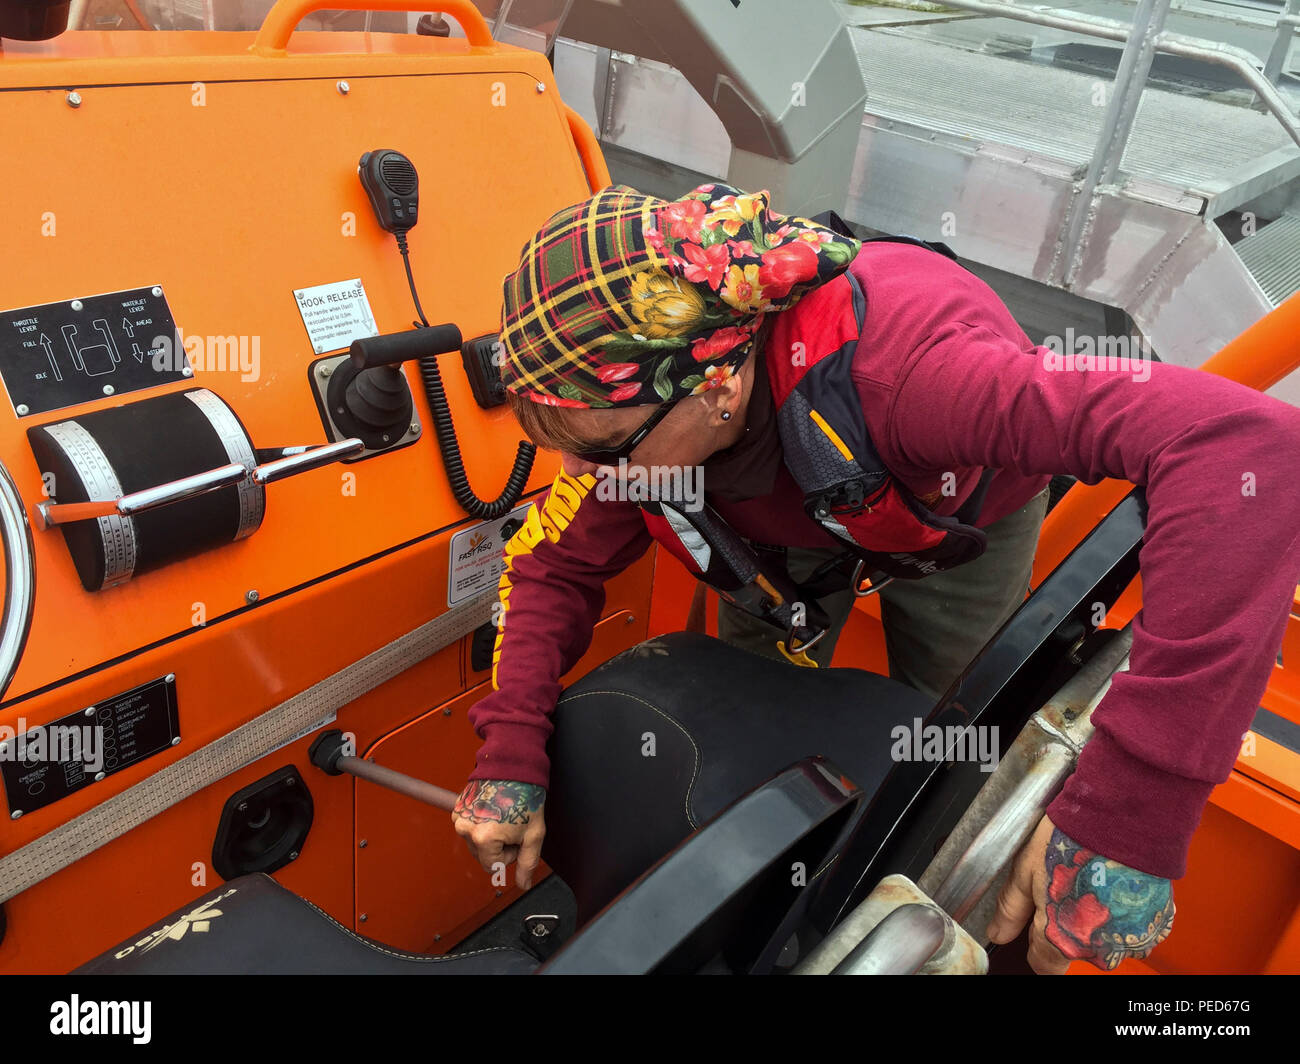 150803-M-GO800-034 PACIFIC OCEAN (Aug. 3, 2015) – Civilian Mariner Shannon Alves inspects the chains holding up the lifeboat aboard the Military Sealift Command joint high speed vessel USNS Millinocket (JHSV 3) Aug. 3. Alves is responsible for the upkeep and maintenance of all the equipment aboard the Millinocket. Task Force Forager, embarked aboard the Millinocket is serving as the secondary platform for Pacific Partnership, led by an expeditionary command element from the Navy's 30th Naval Construction Regiment (30 NCR) from Port Hueneme, Calif. Now in its 10th iteration, Pacific Partnership - Stock Image